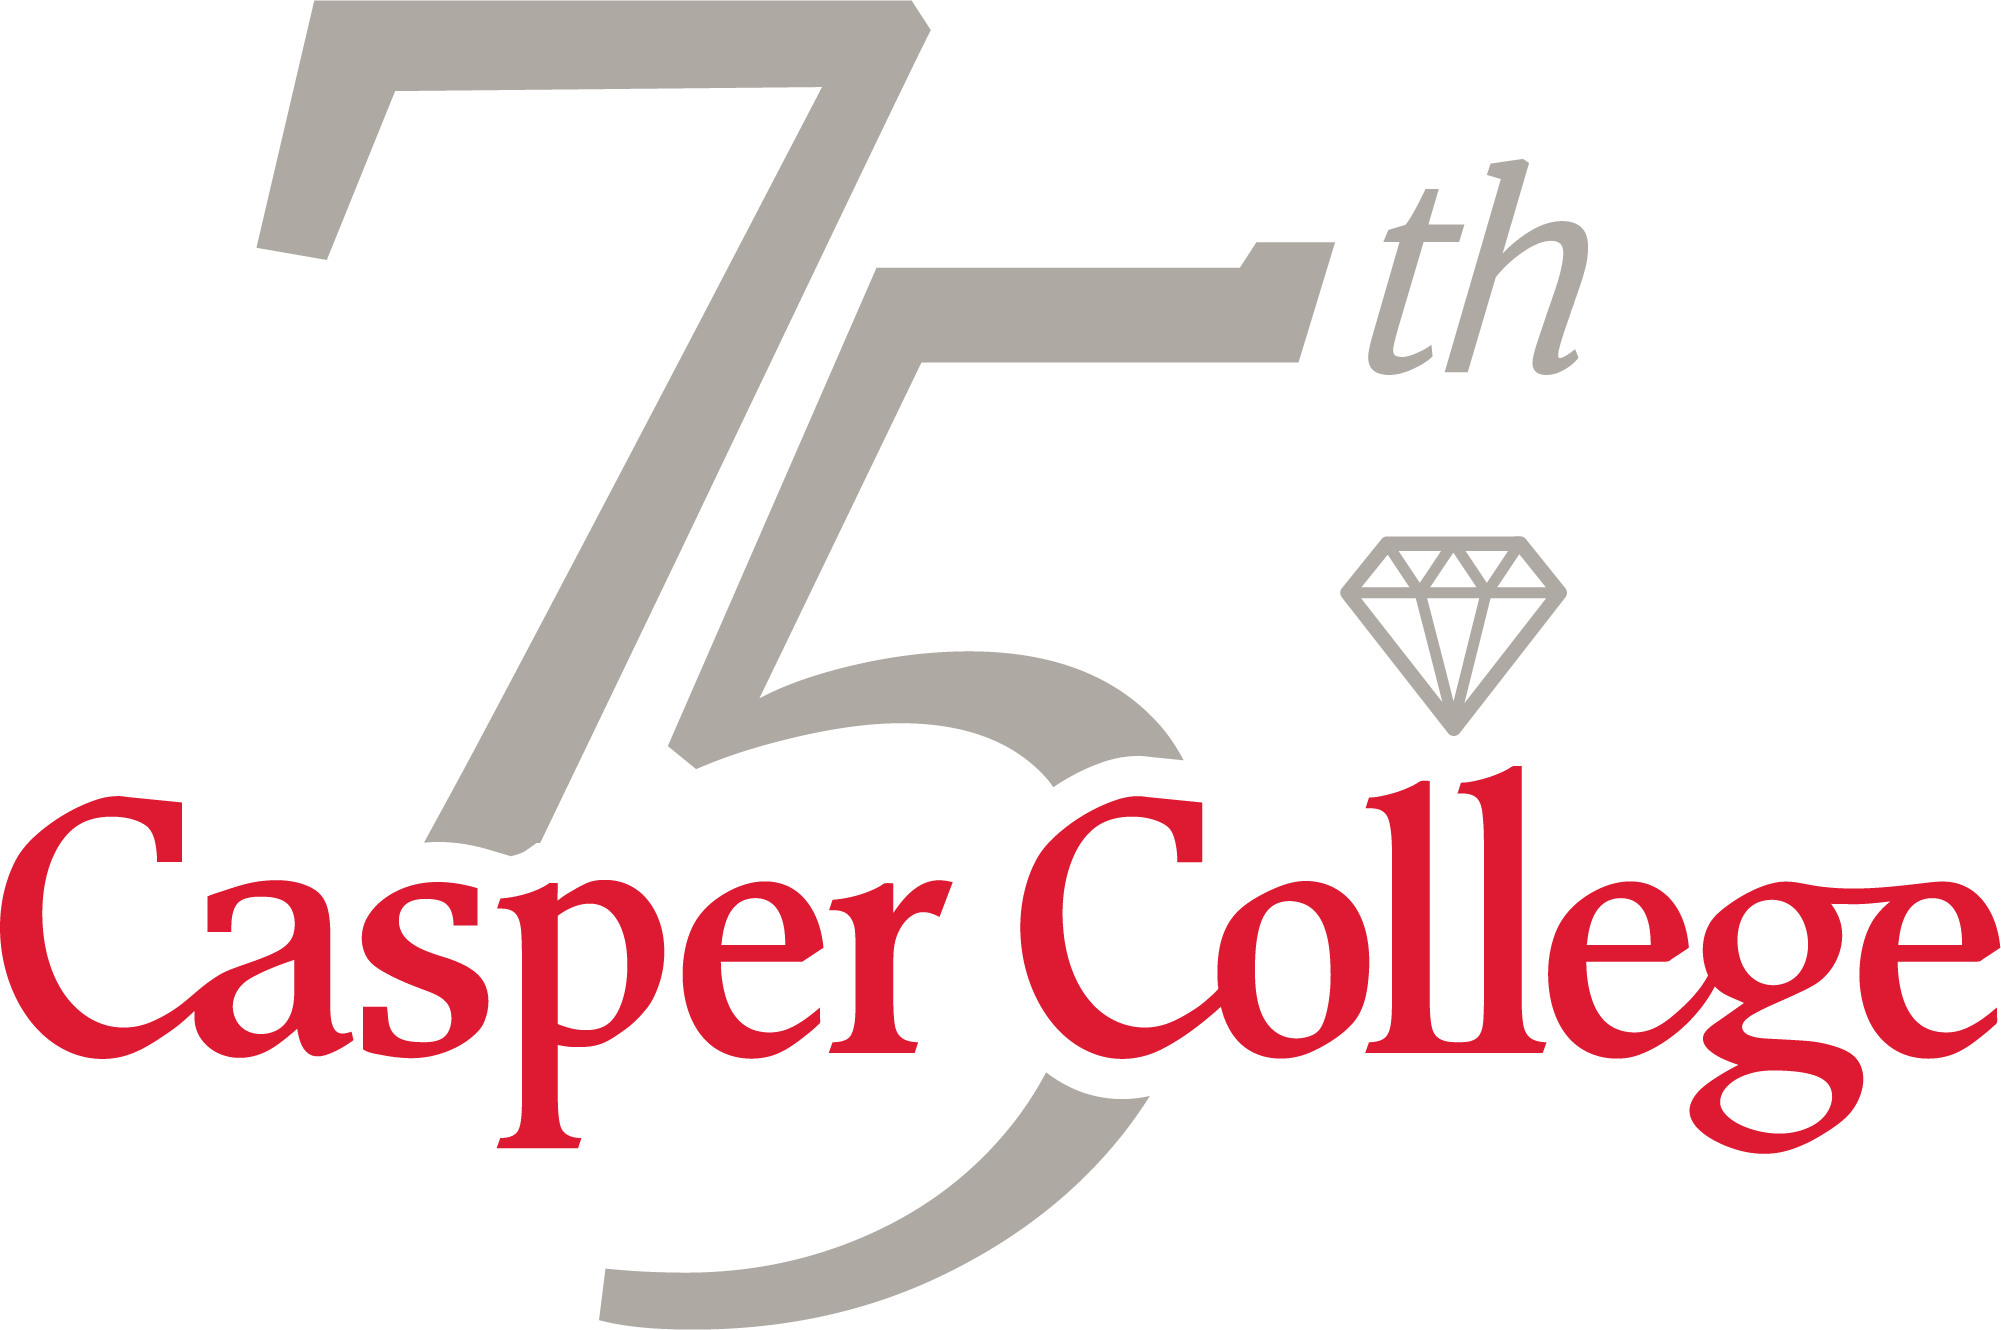 Casper College 75th anniversary